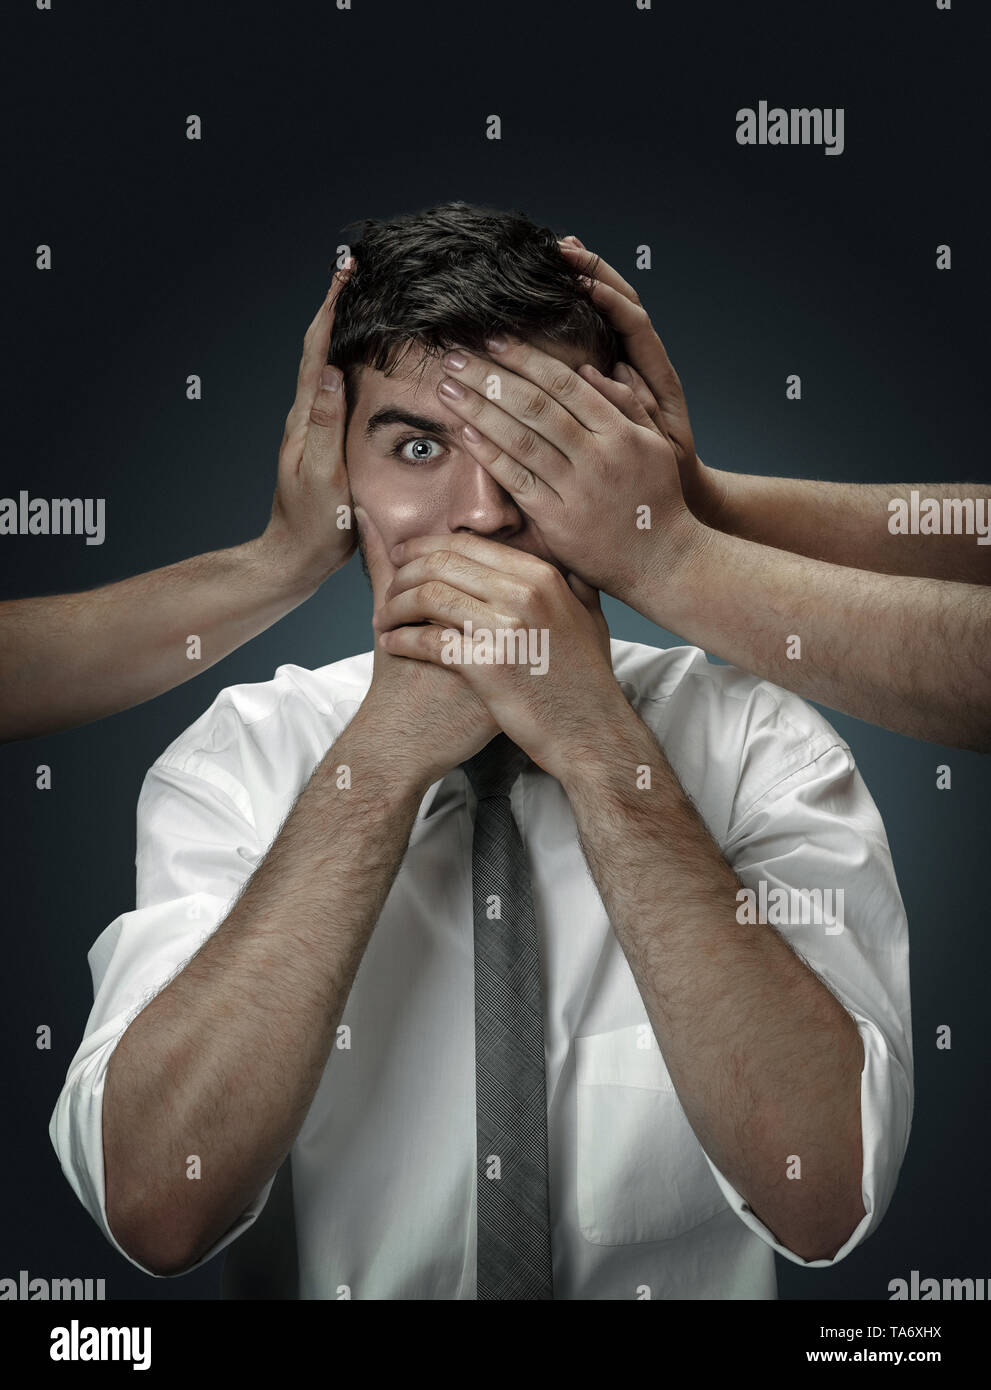 A male model surrounded by hands like his own thoughts on dark background. A young man doubts, can't choose the right decision and decide. Concept of  - Stock Image